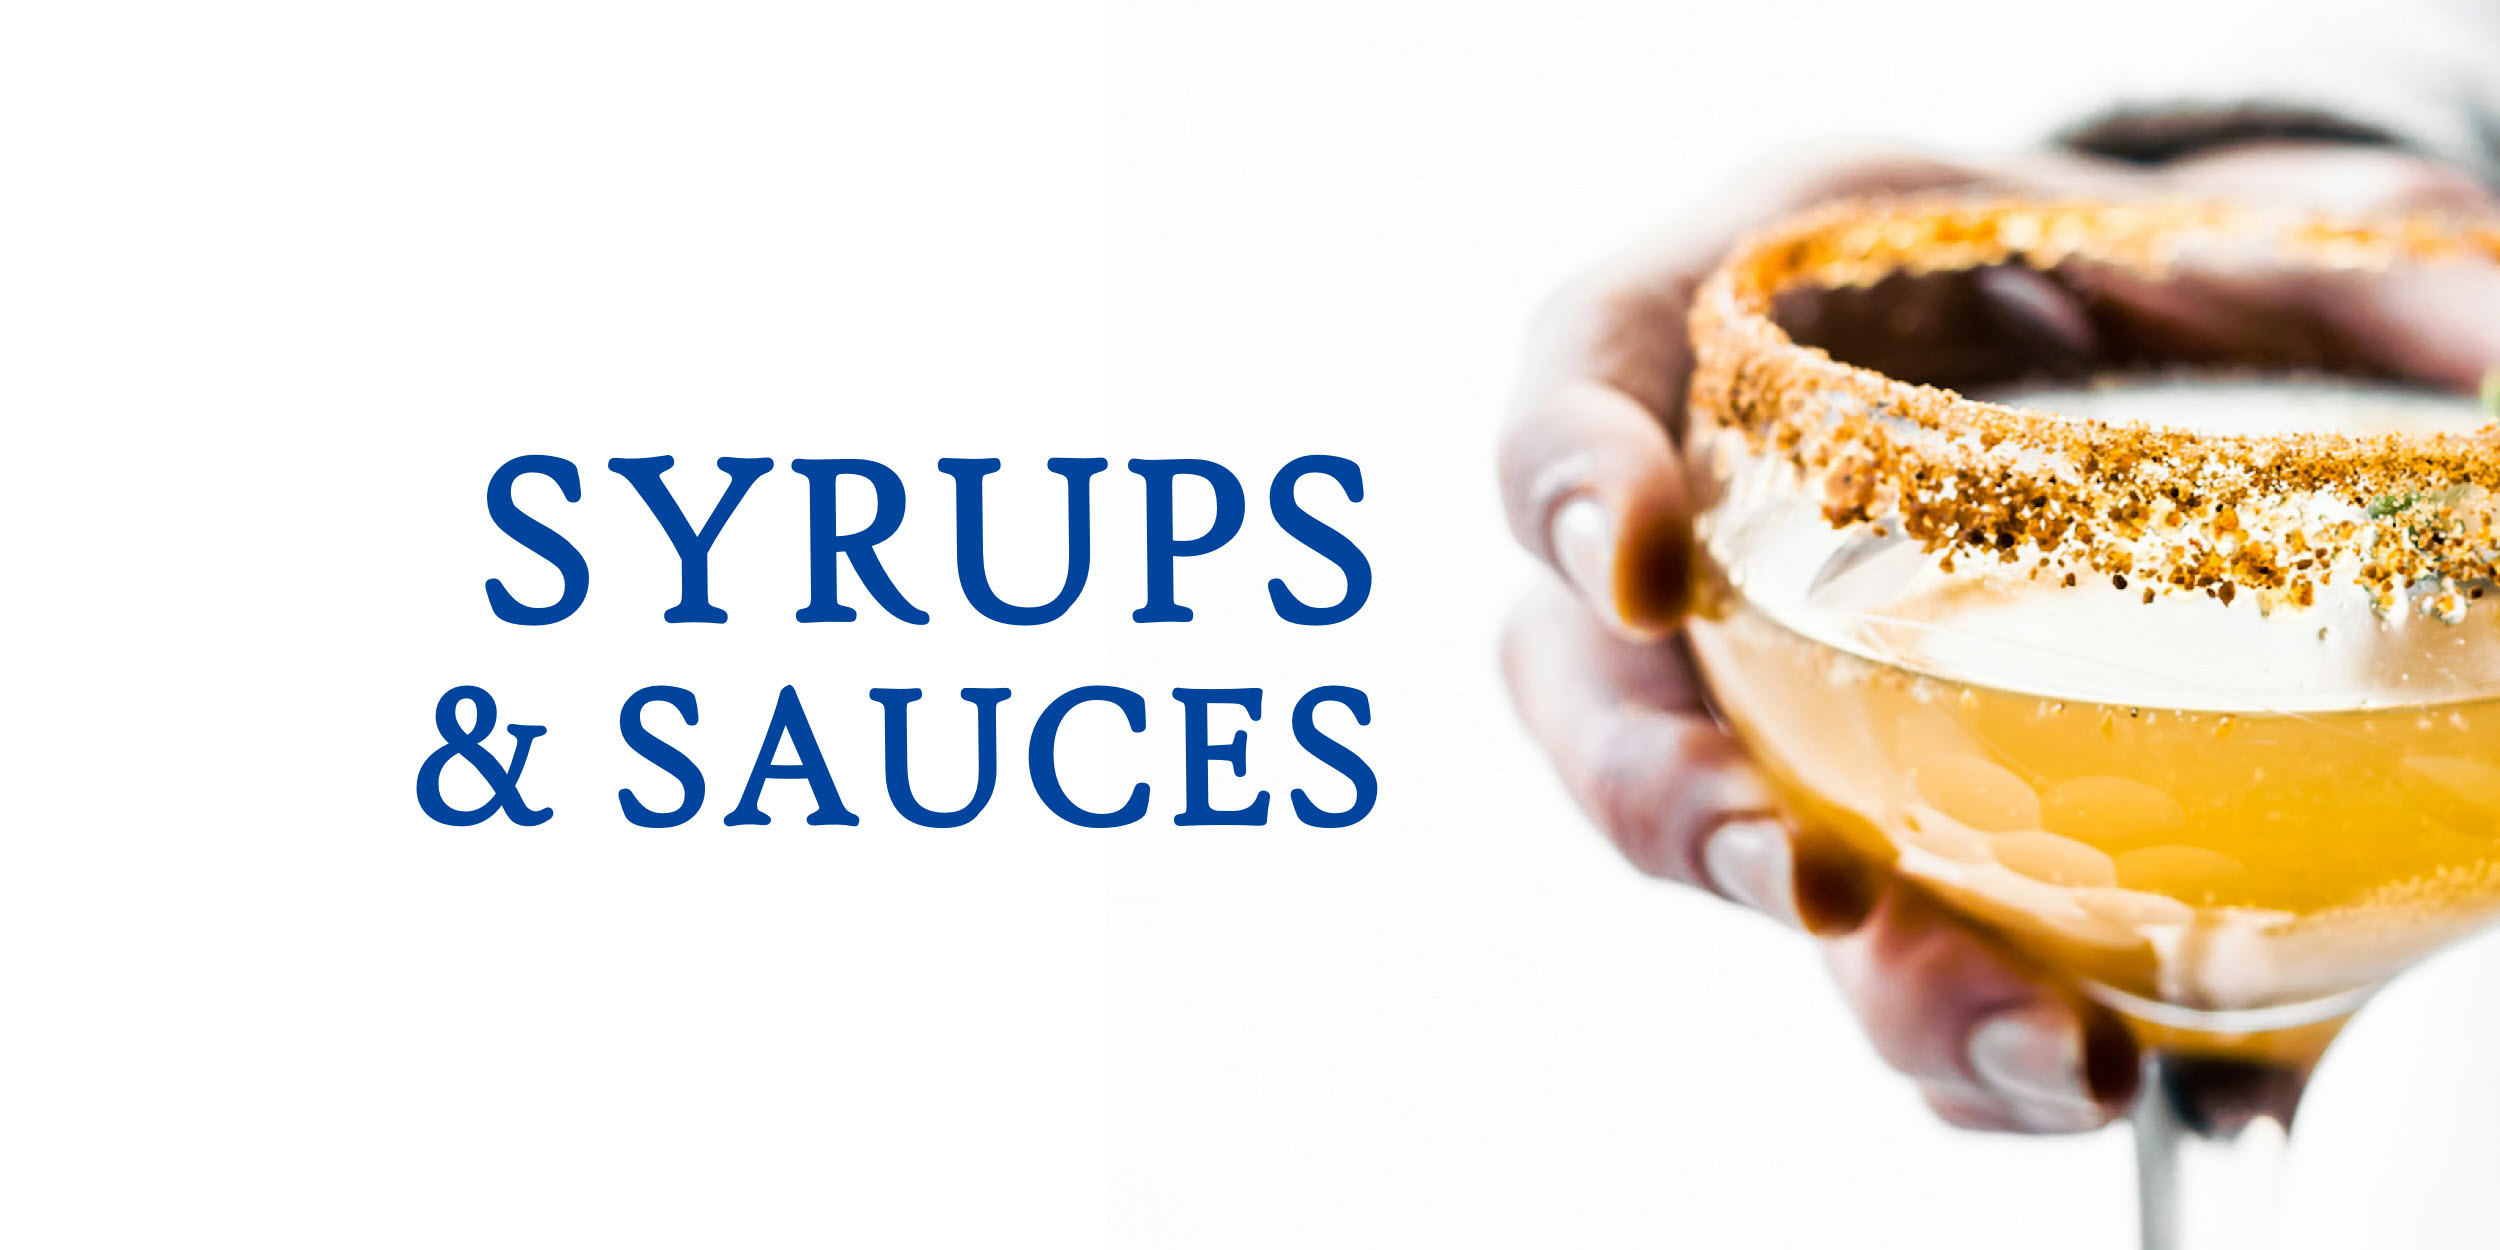 Shop Syrups & Sauces